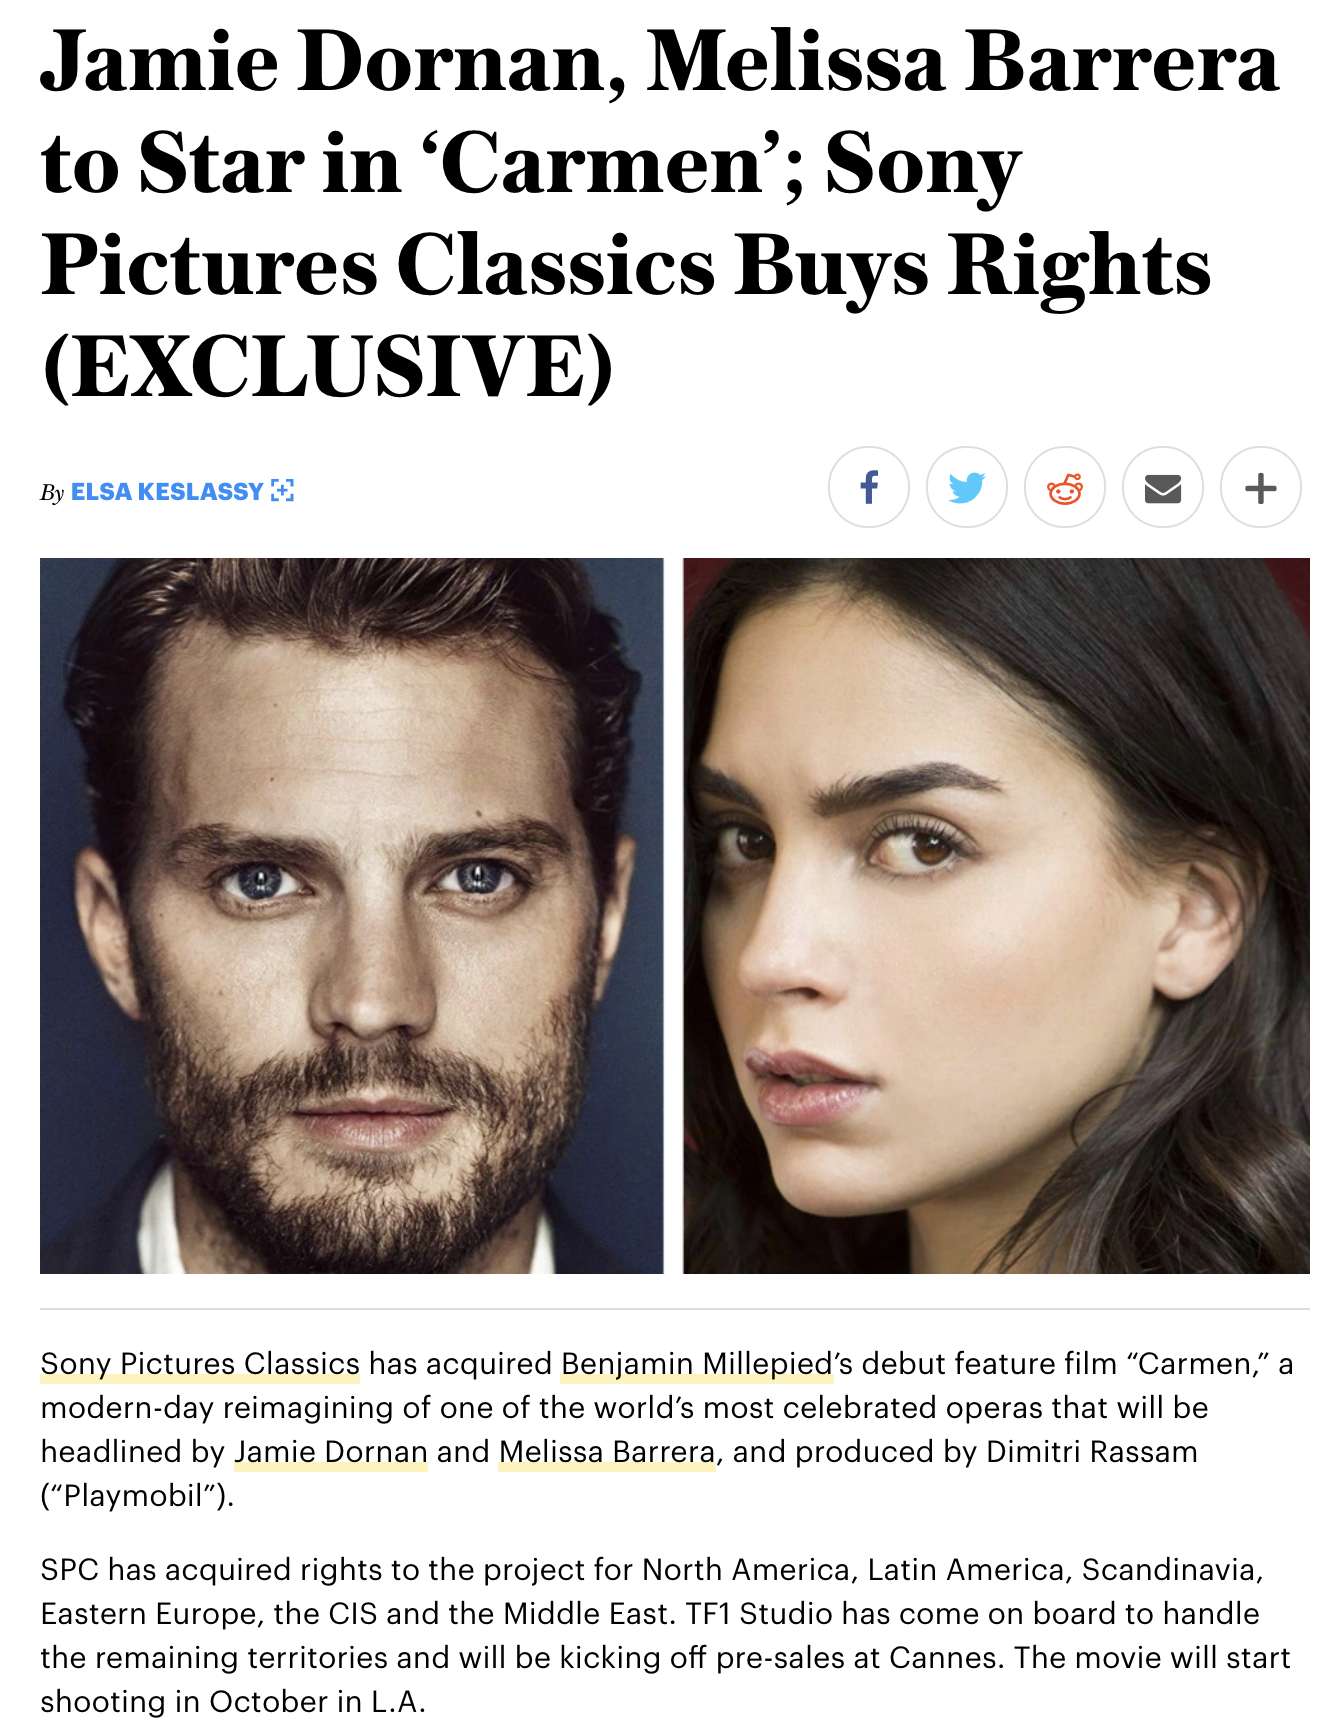 "Sony Pictures Classics  has acquired  Benjamin Millepied 's debut feature film ""Carmen,"" a modern-day reimagining of one of the world's most celebrated operas that will be headlined by  Jamie Dornan  and  Melissa Barrera , and produced by Dimitri Rassam (""Playmobil"").  SPC has acquired rights to the project for North America, Latin America, Scandinavia, Eastern Europe, the CIS and the Middle East. TF1 Studio has come on board to handle the remaining territories and will be kicking off pre-sales at Cannes. The movie will start shooting in October in L.A.  Millepied has assembled a strong creative team, including Pulitzer Prize-winning playwright Nilo Cruz (""Anna in the Tropics"") who is currently finalizing the shooting draft, and Oscar-nominated music composer Nicholas Britell (""Moonlight,"" ""Vice"") who will compose an original score."